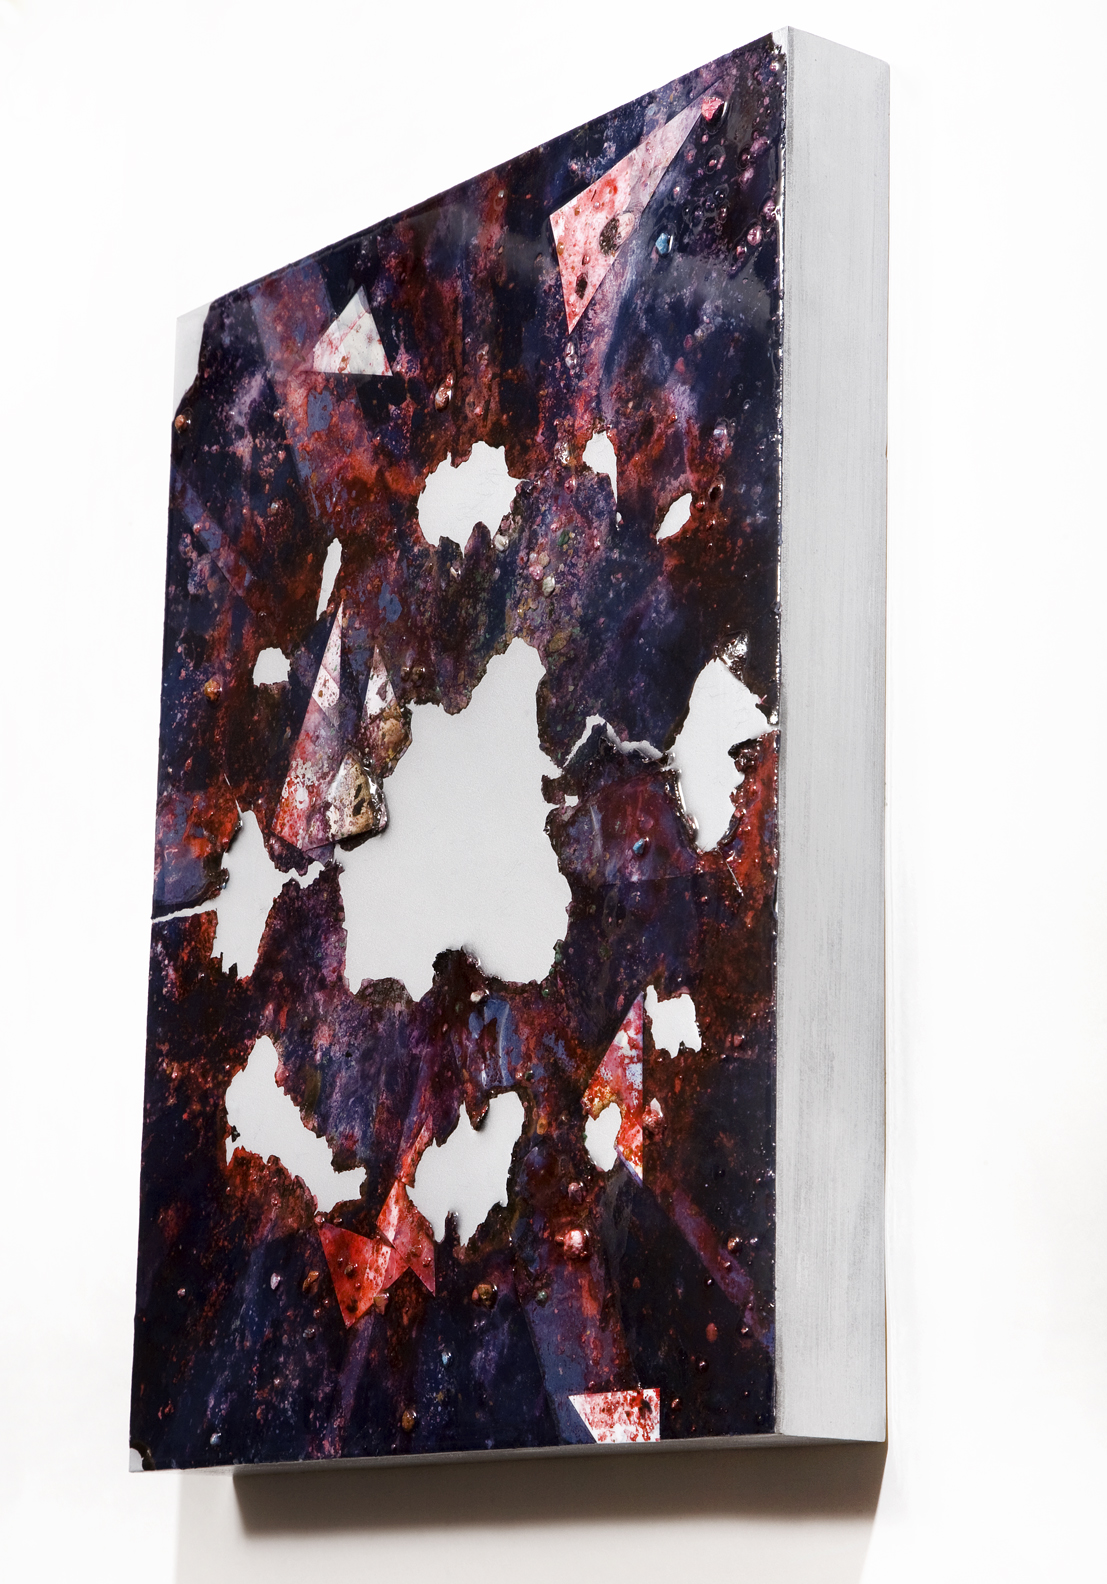 """SERIE I, Untitled SIDE VIEW, (navy/silver), photographs, photo background paper, chalk, spray paint, packing tape, powder drink, glue, epoxy resin on wood panel, 16""""x20""""x2"""", 2018"""